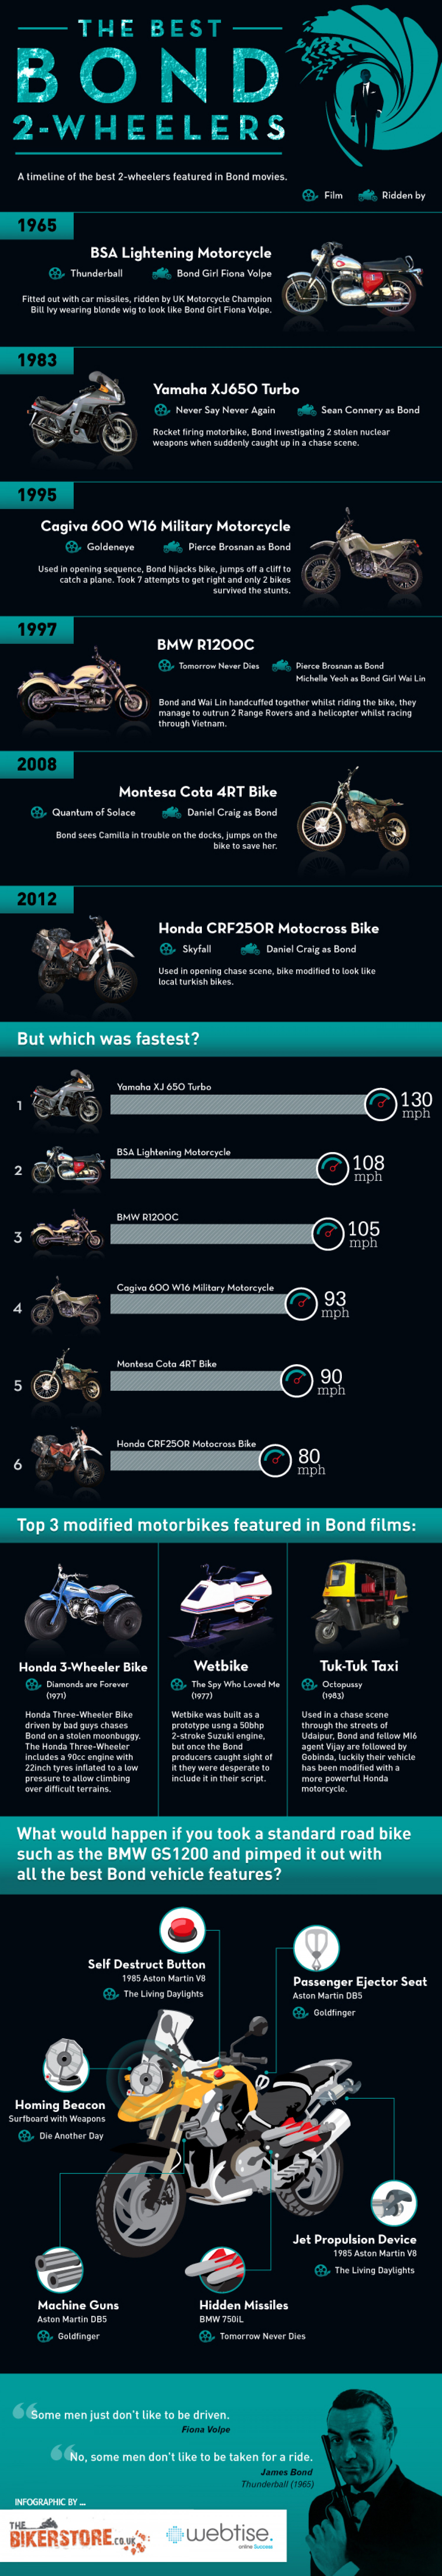 The Best Bond 2-Whelers Infographic